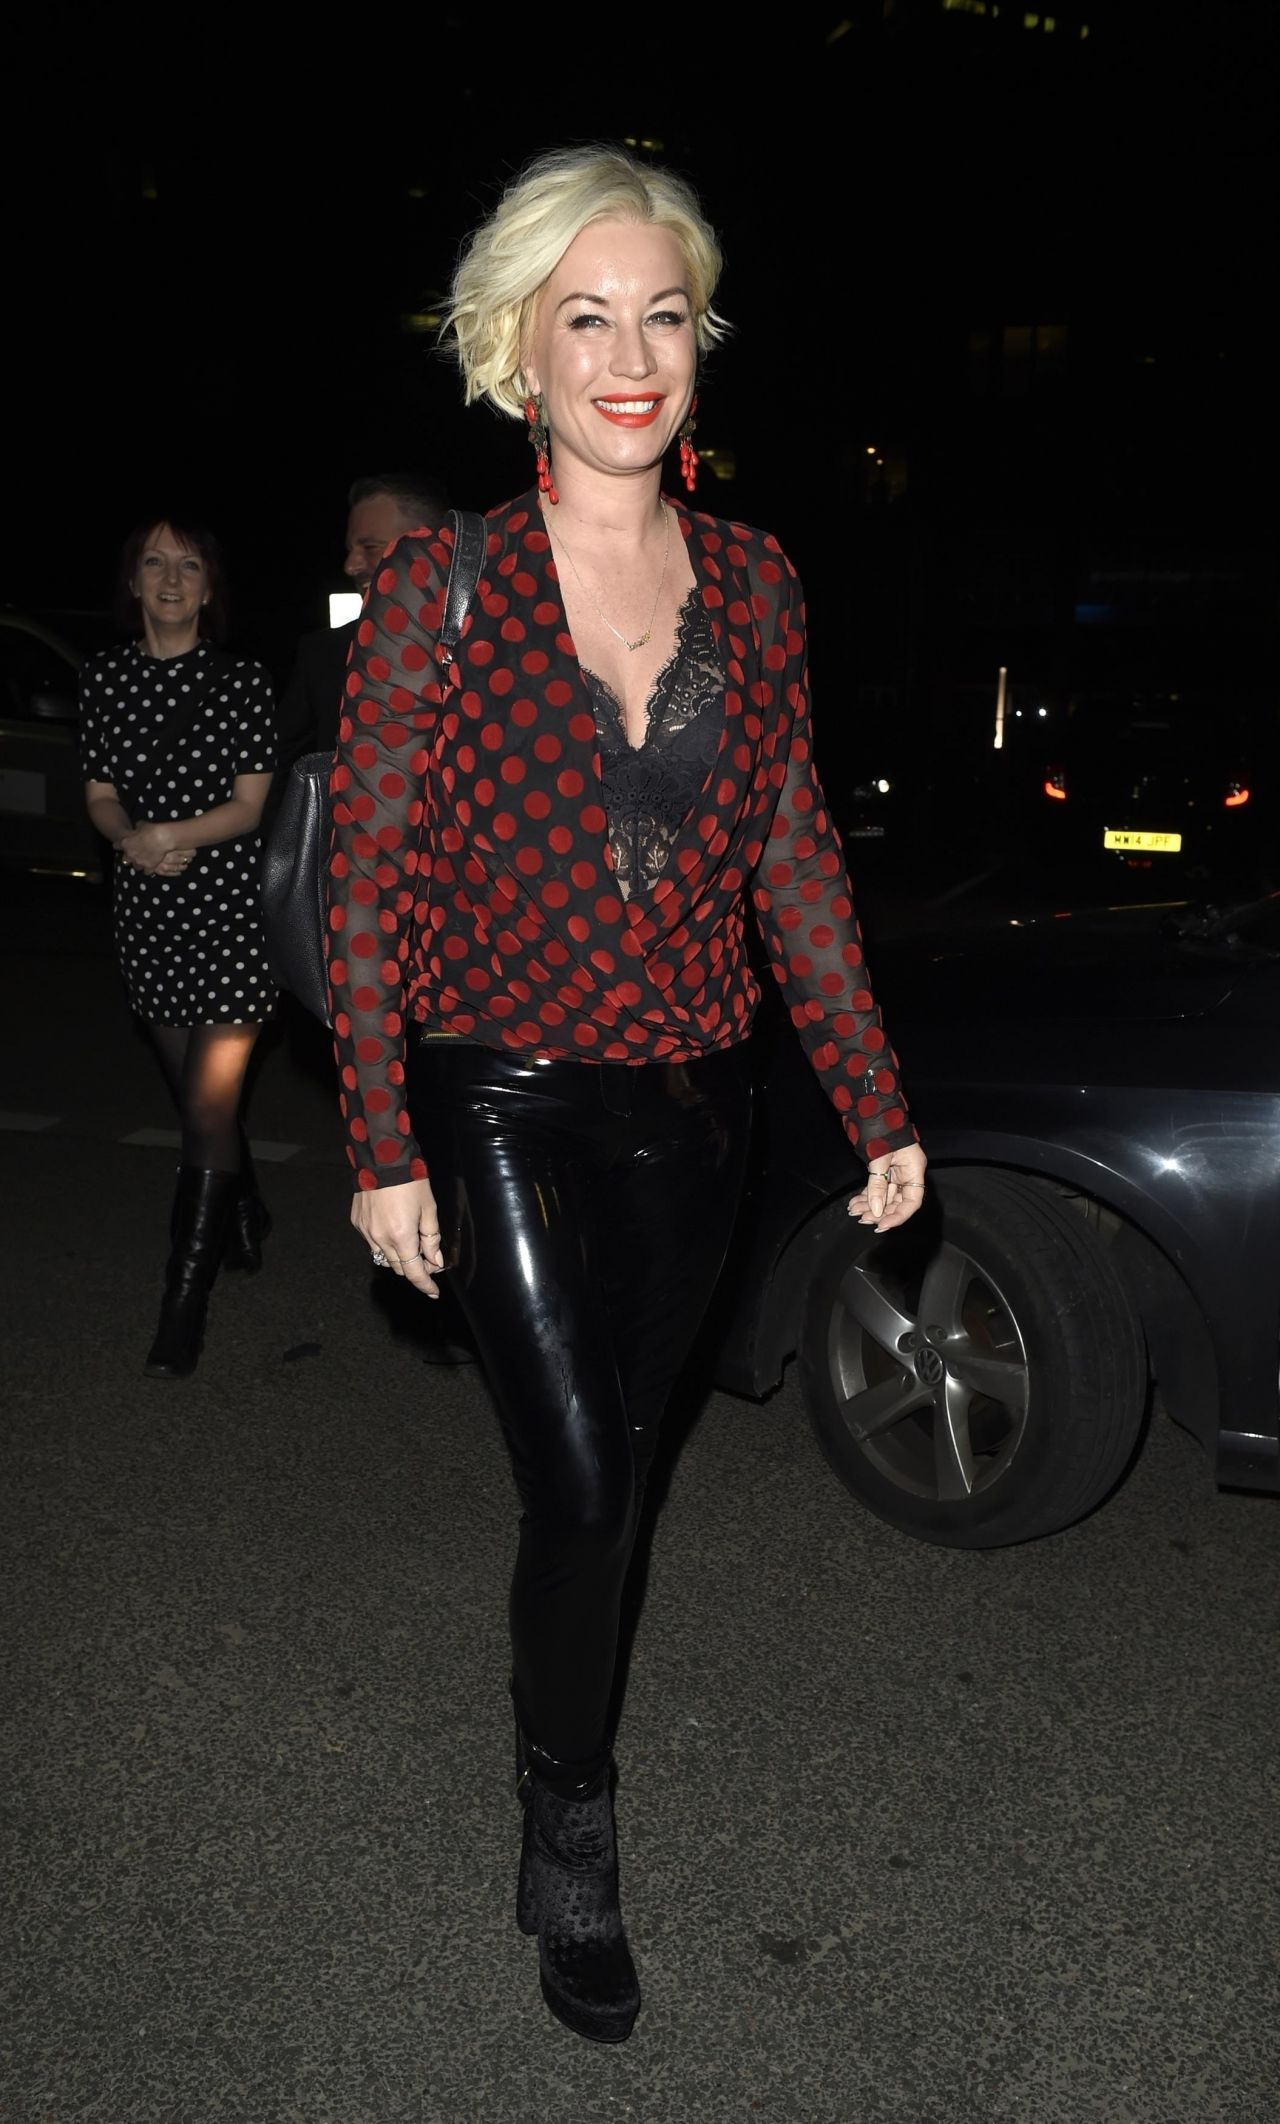 Denise Van Outen Night Out At Menagerie In Manchester-5651